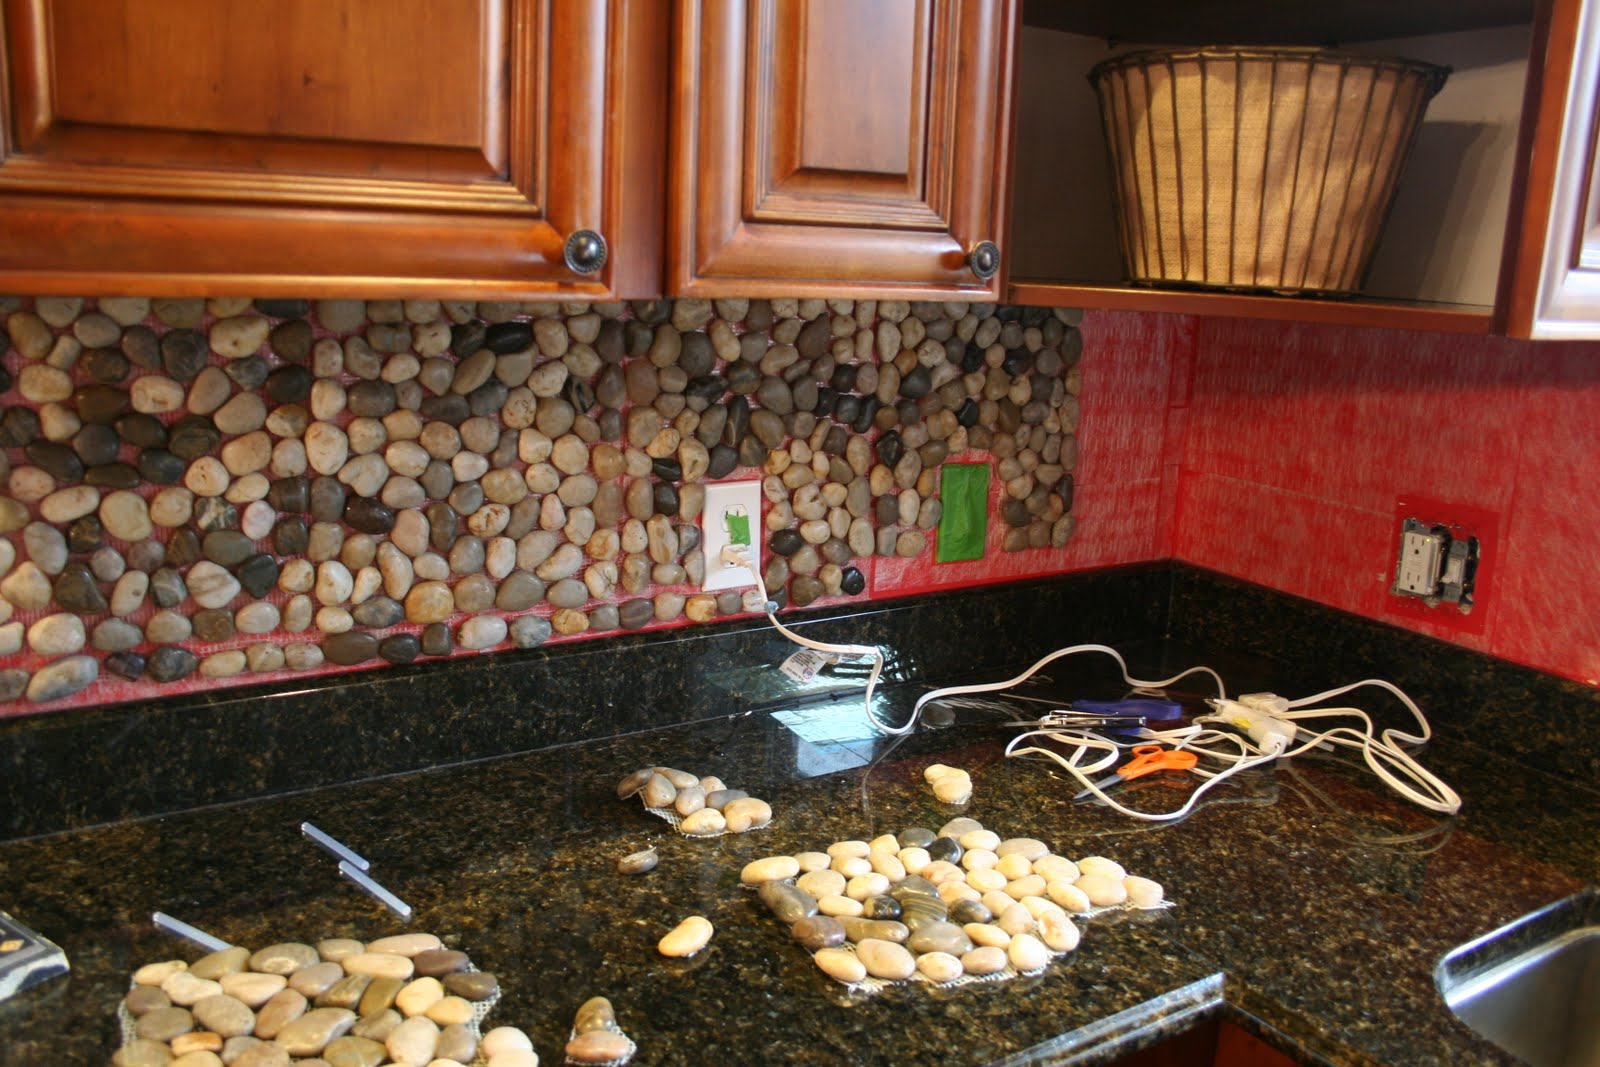 garden stone kitchen backsplash tutorial how to backsplash - Stone Kitchen Backsplash